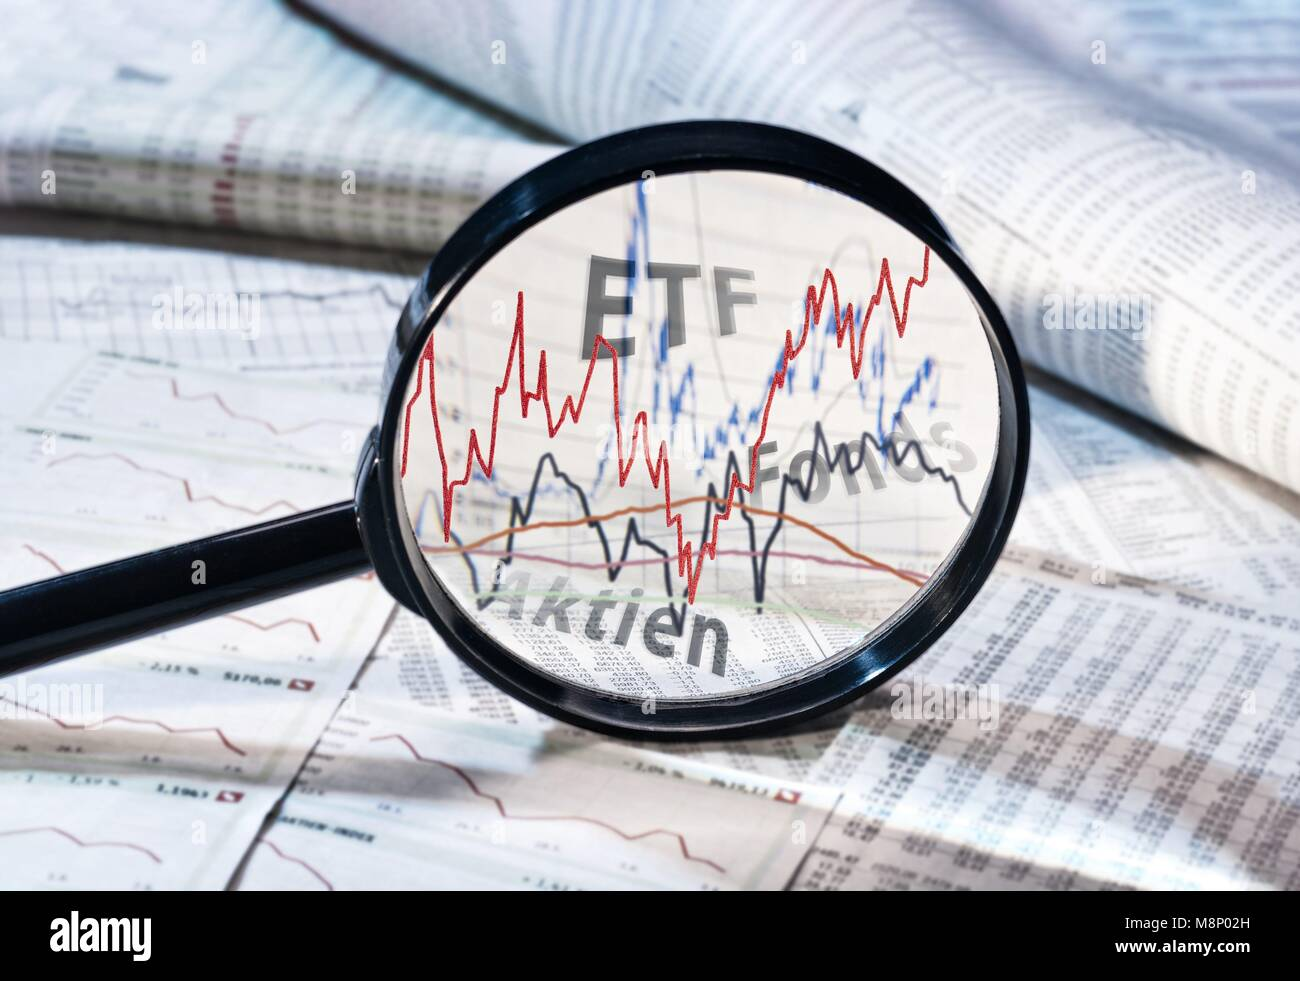 Magnifying glass shows the courses of ETF, funds and shares | usage worldwide Stock Photo